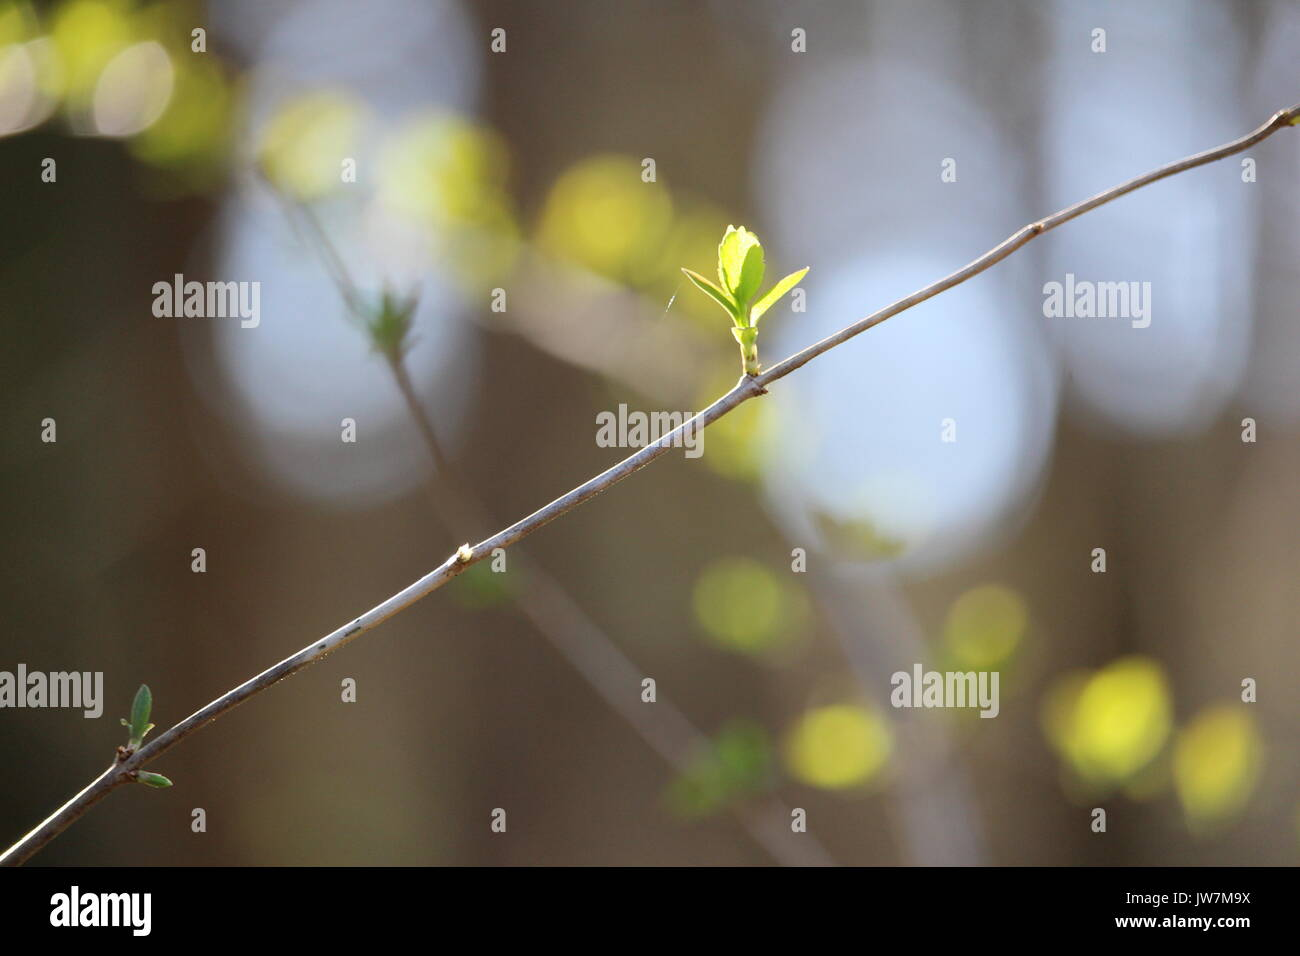 Branch in the sun - Stock Image